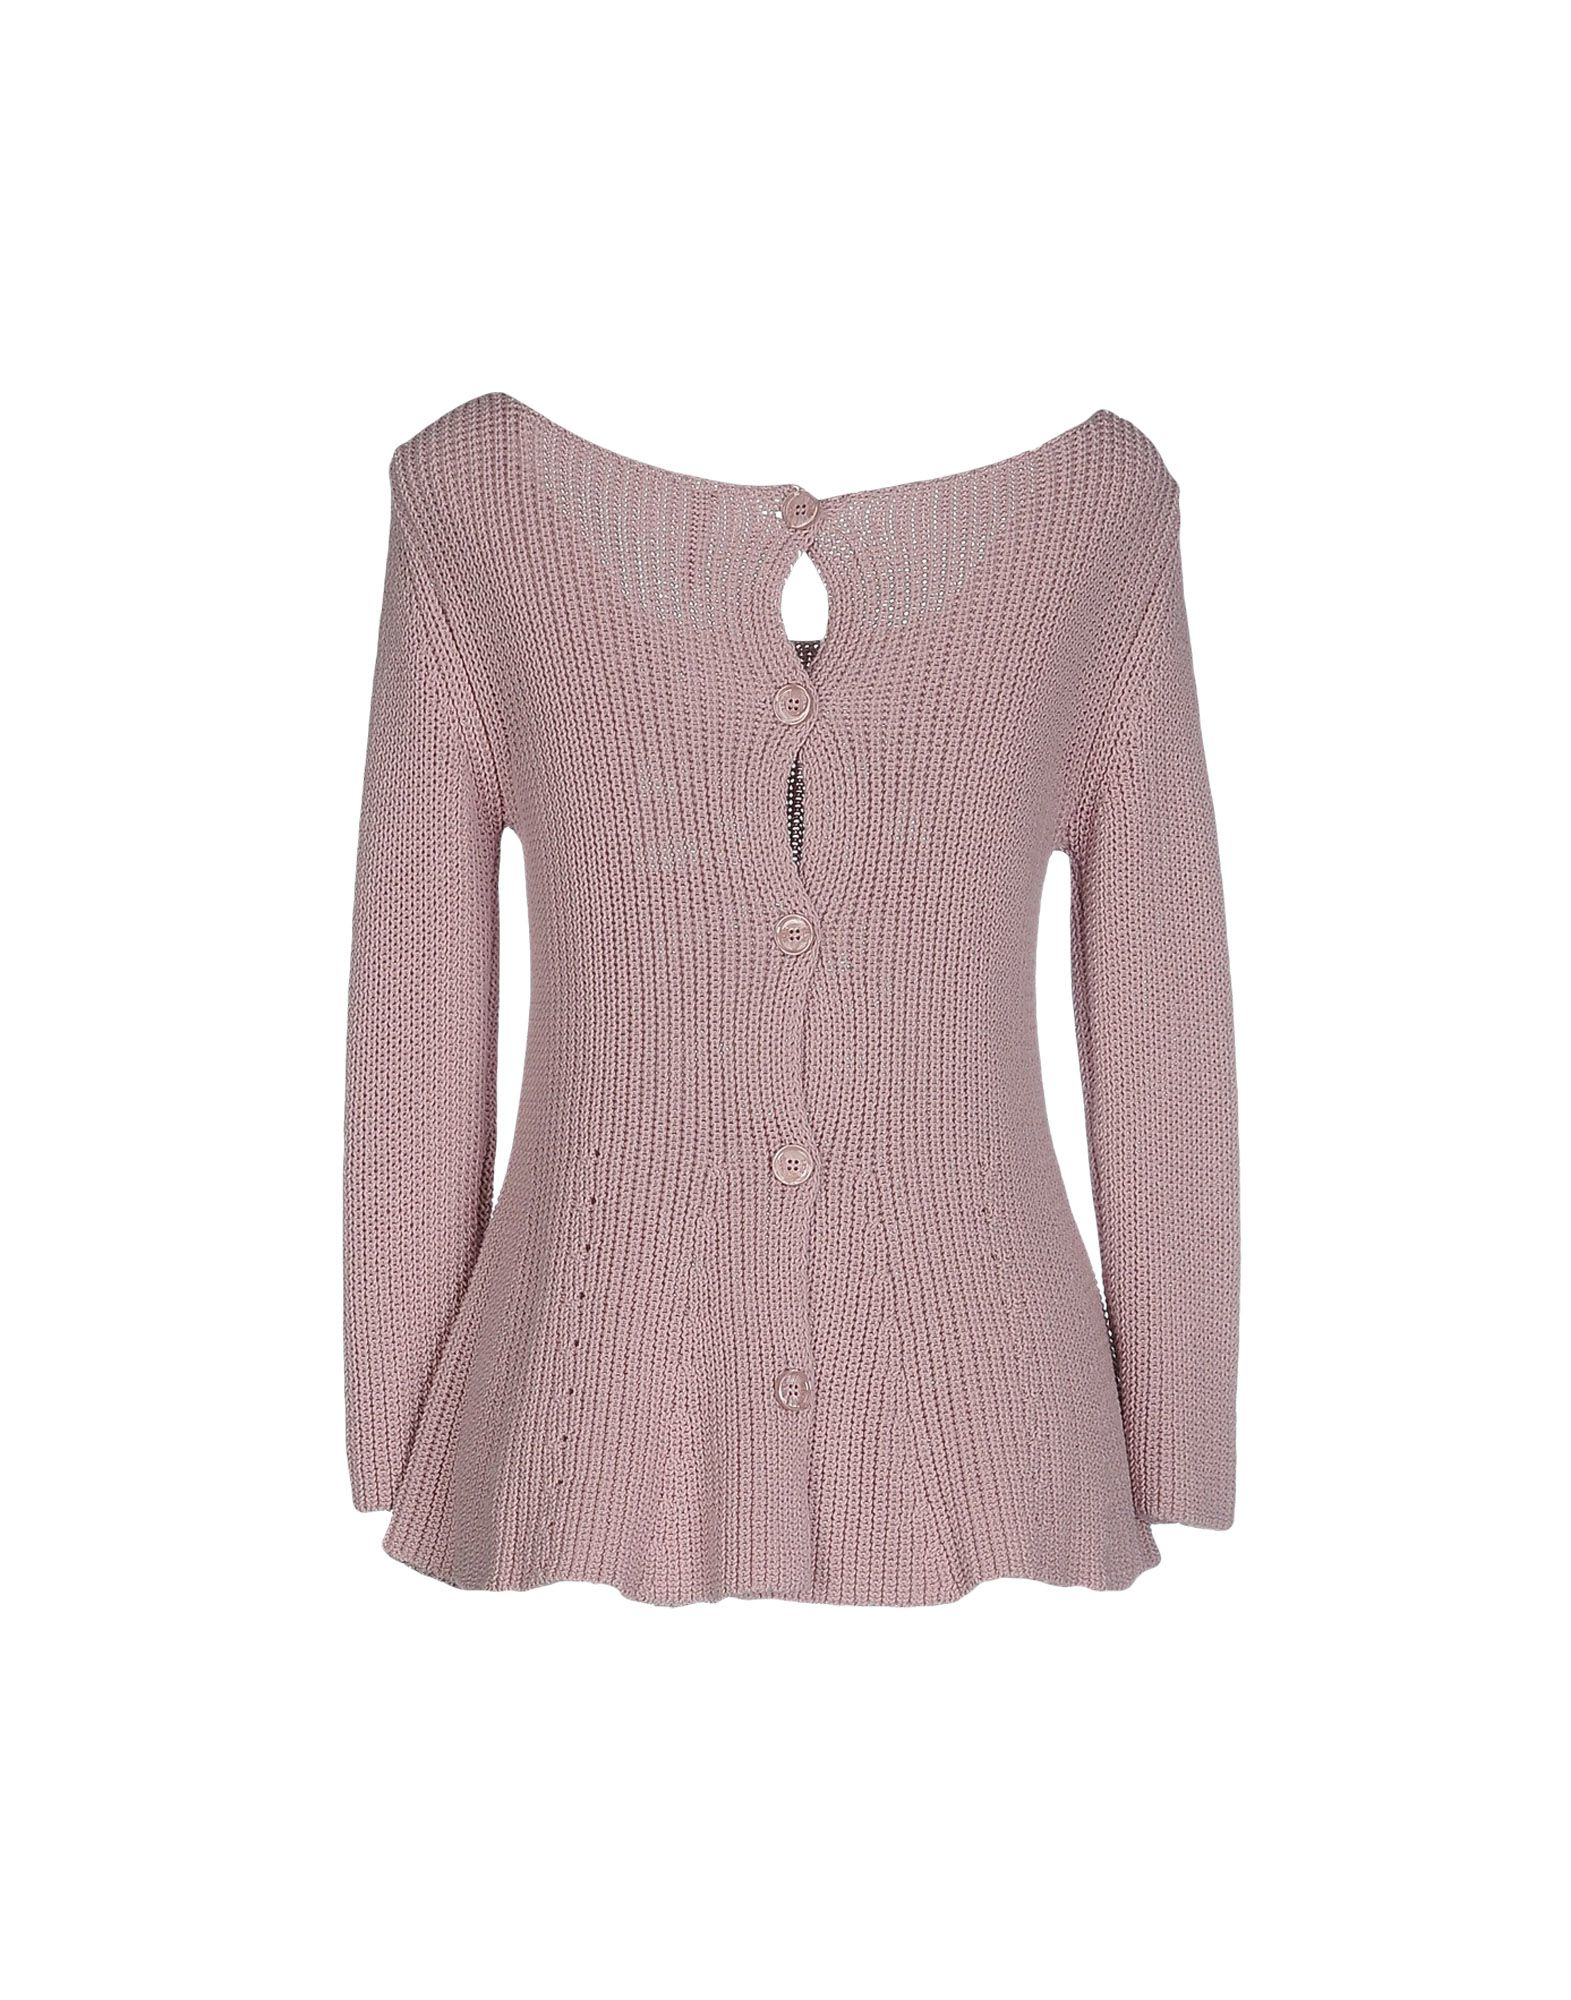 Scee by twin-set Sweater in Pink | Lyst